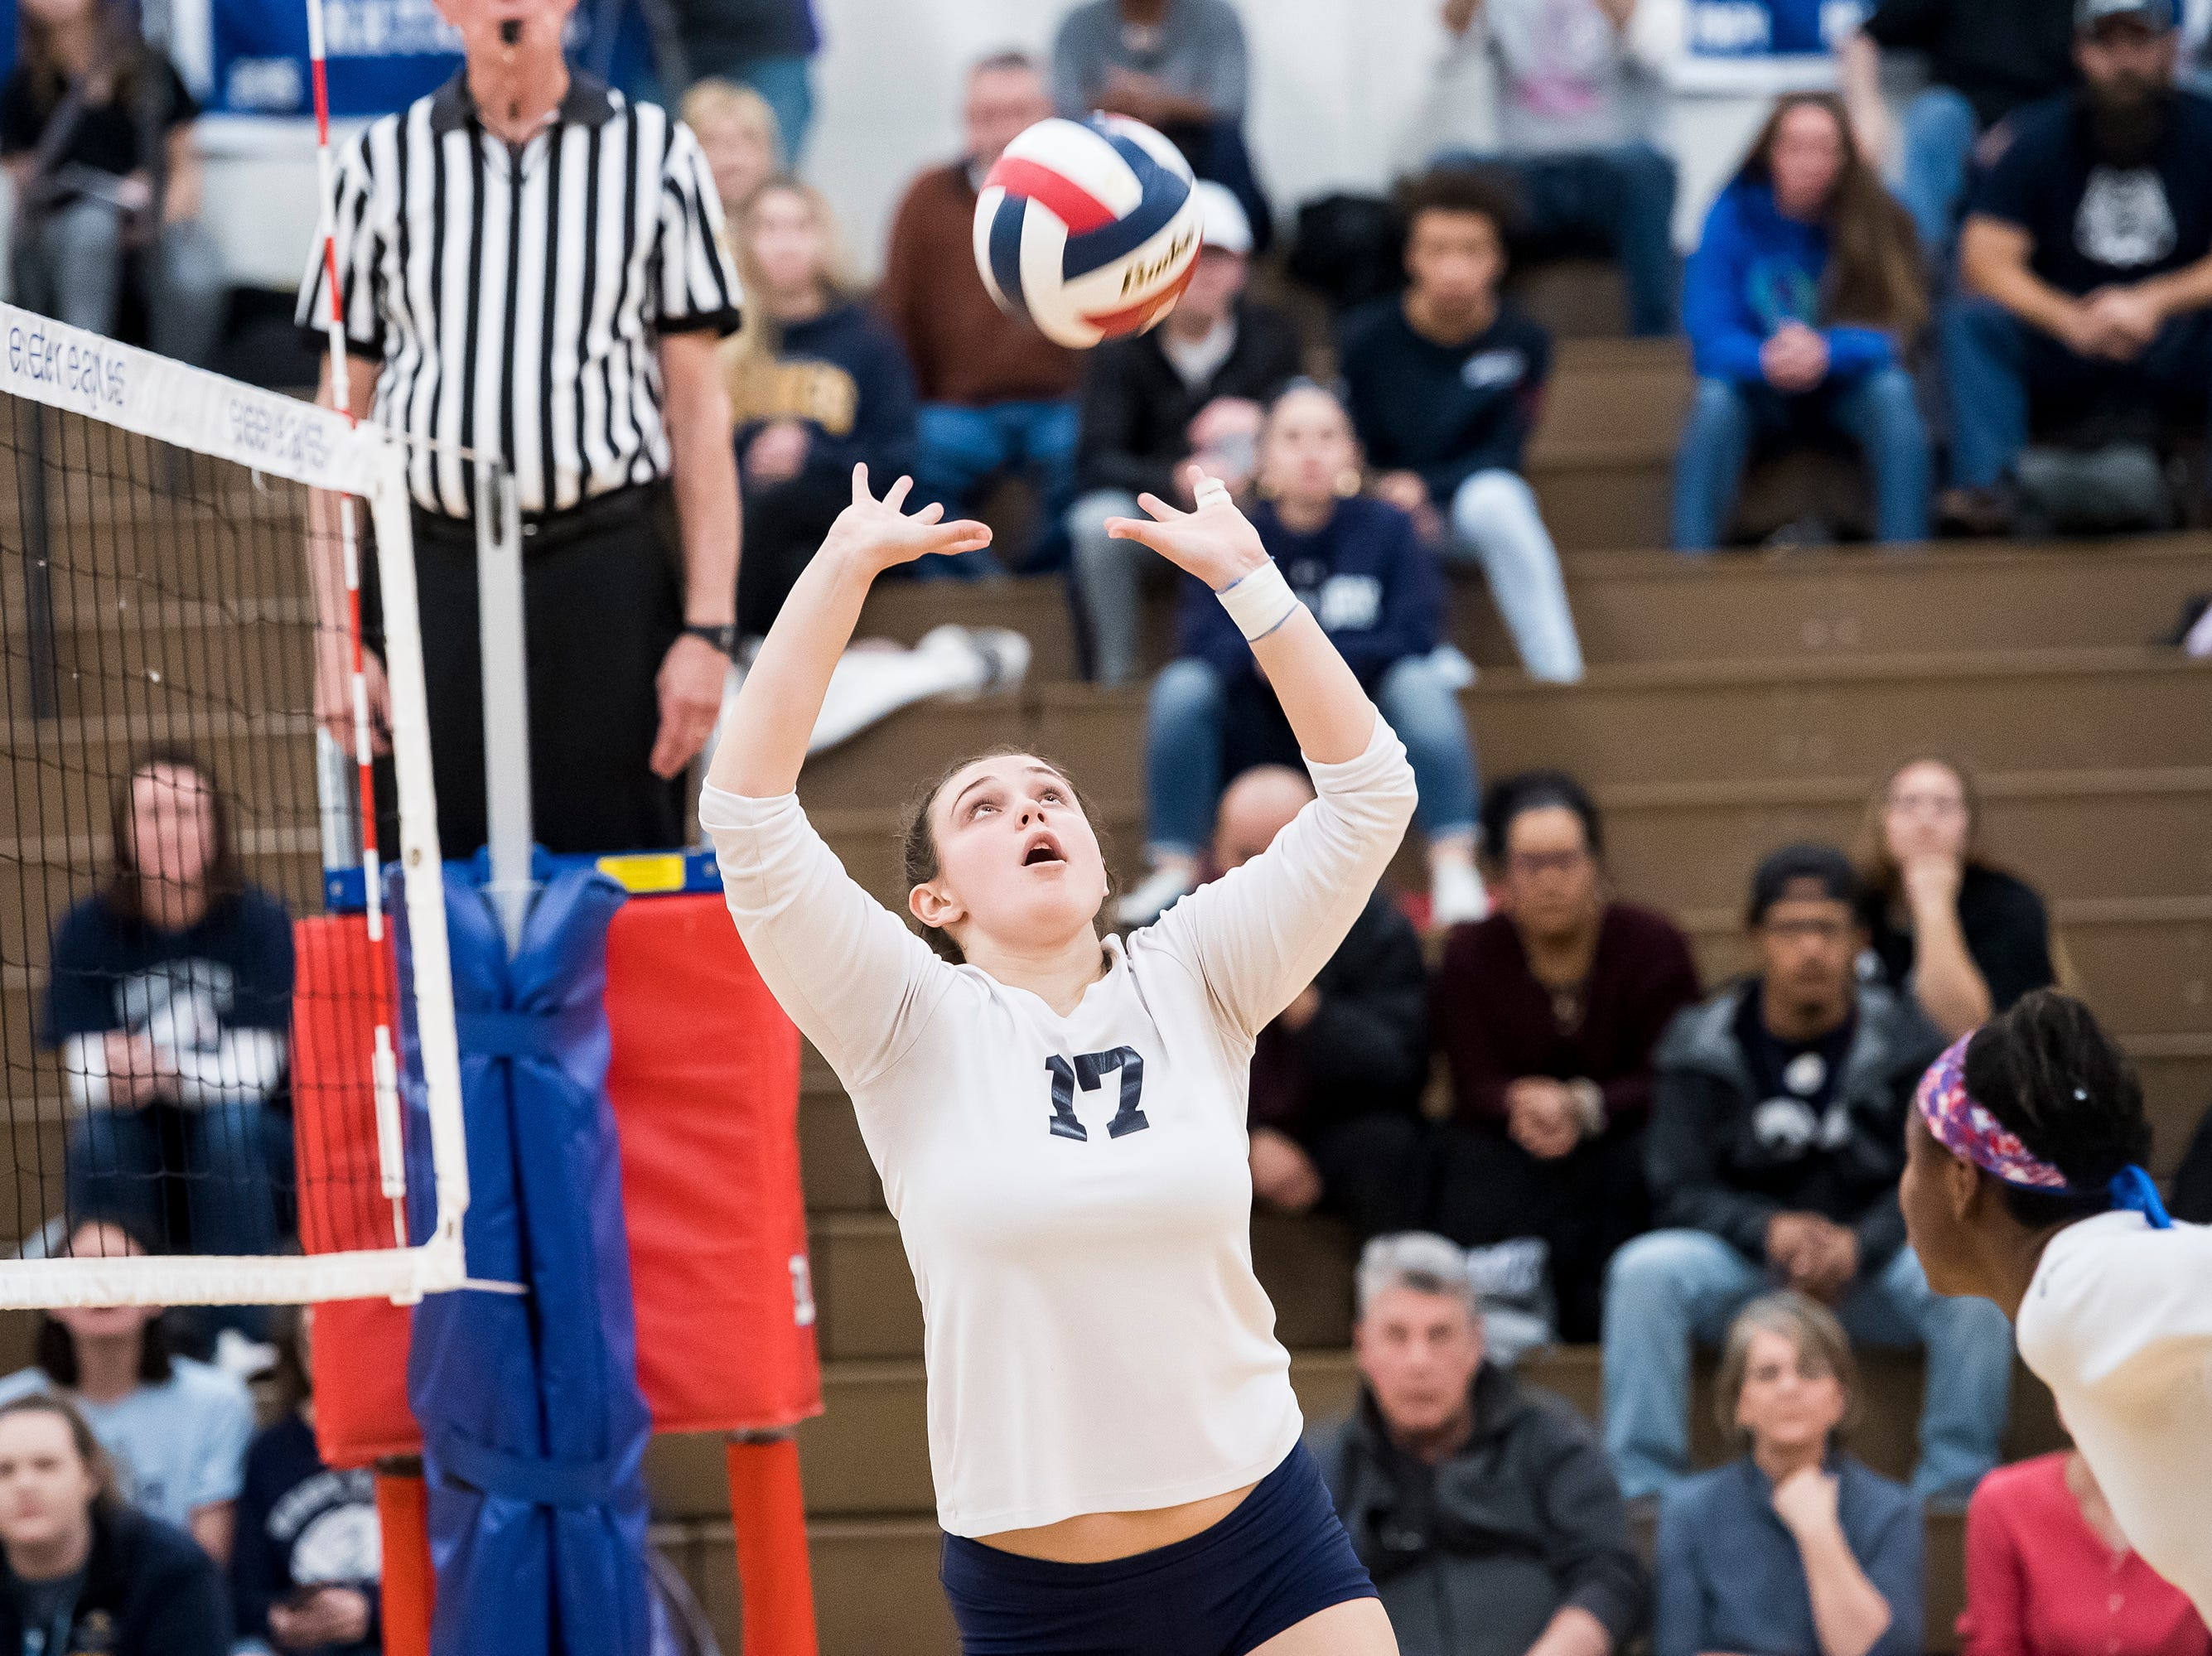 West York's Taylor Morley (17) sets the ball during play against Allentown Central Catholic in a PIAA 3A semifinal game at Exeter Township High School in Reading on Tuesday, November 13, 2018.